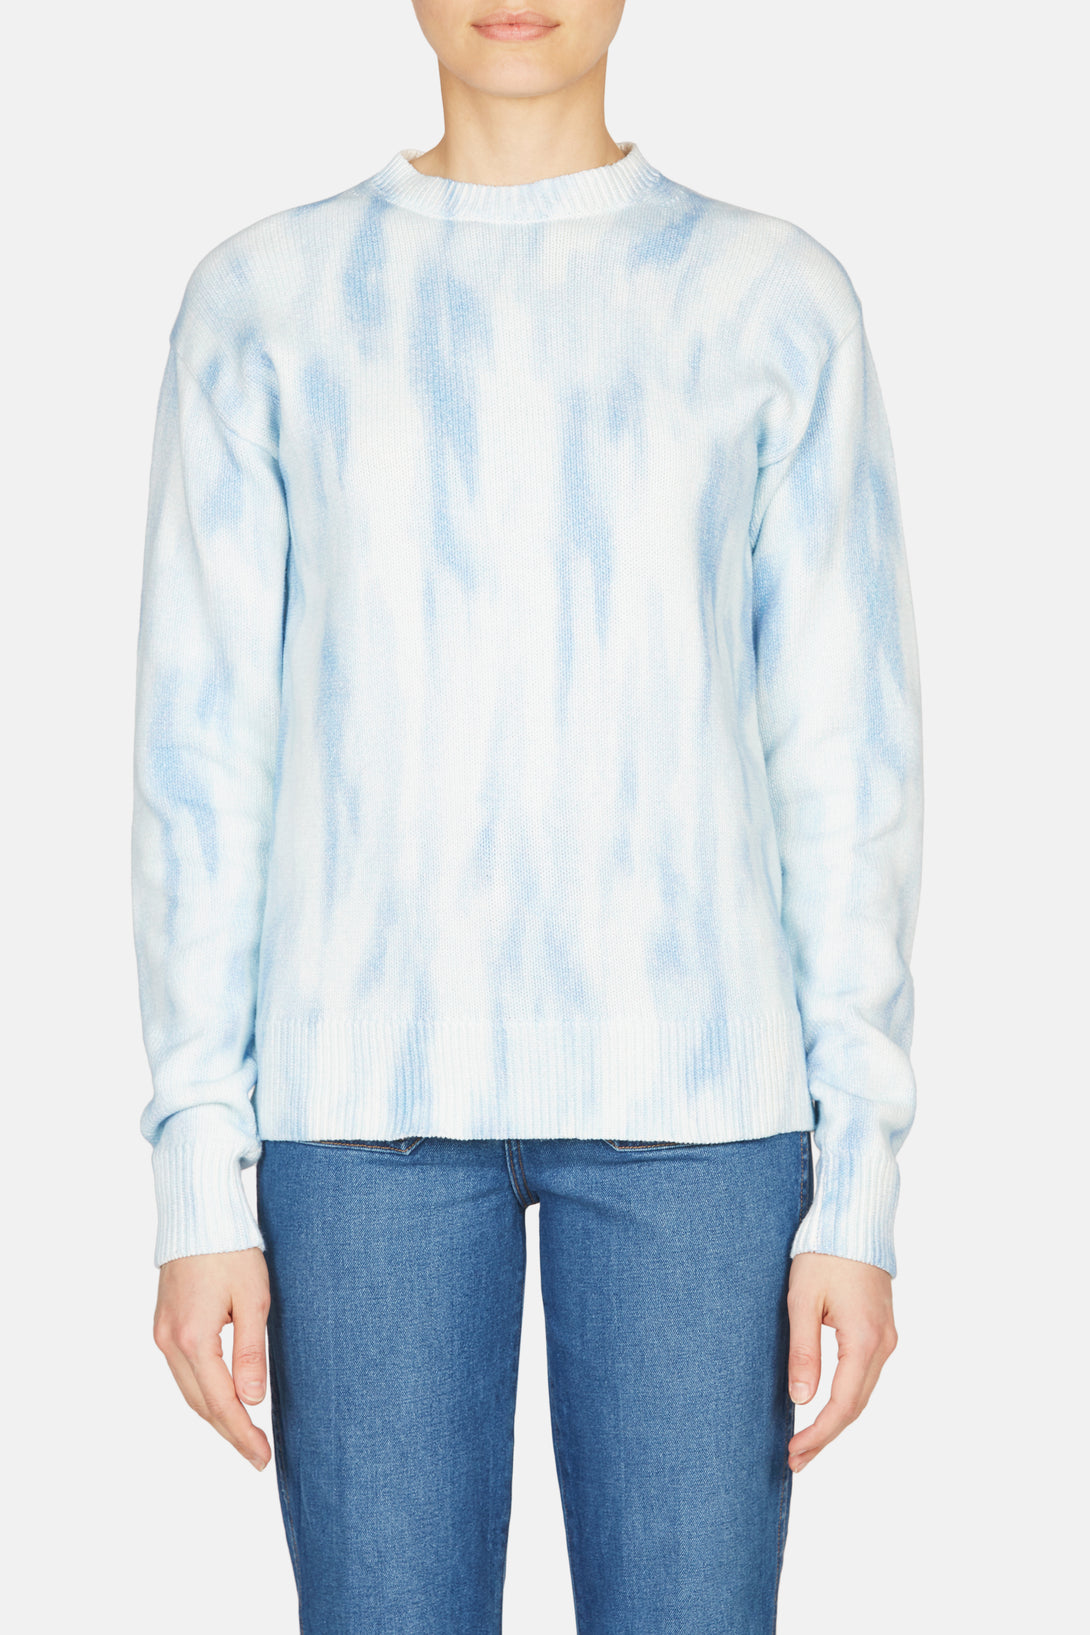 Courtney Tie Dye Crew - Milky Blue